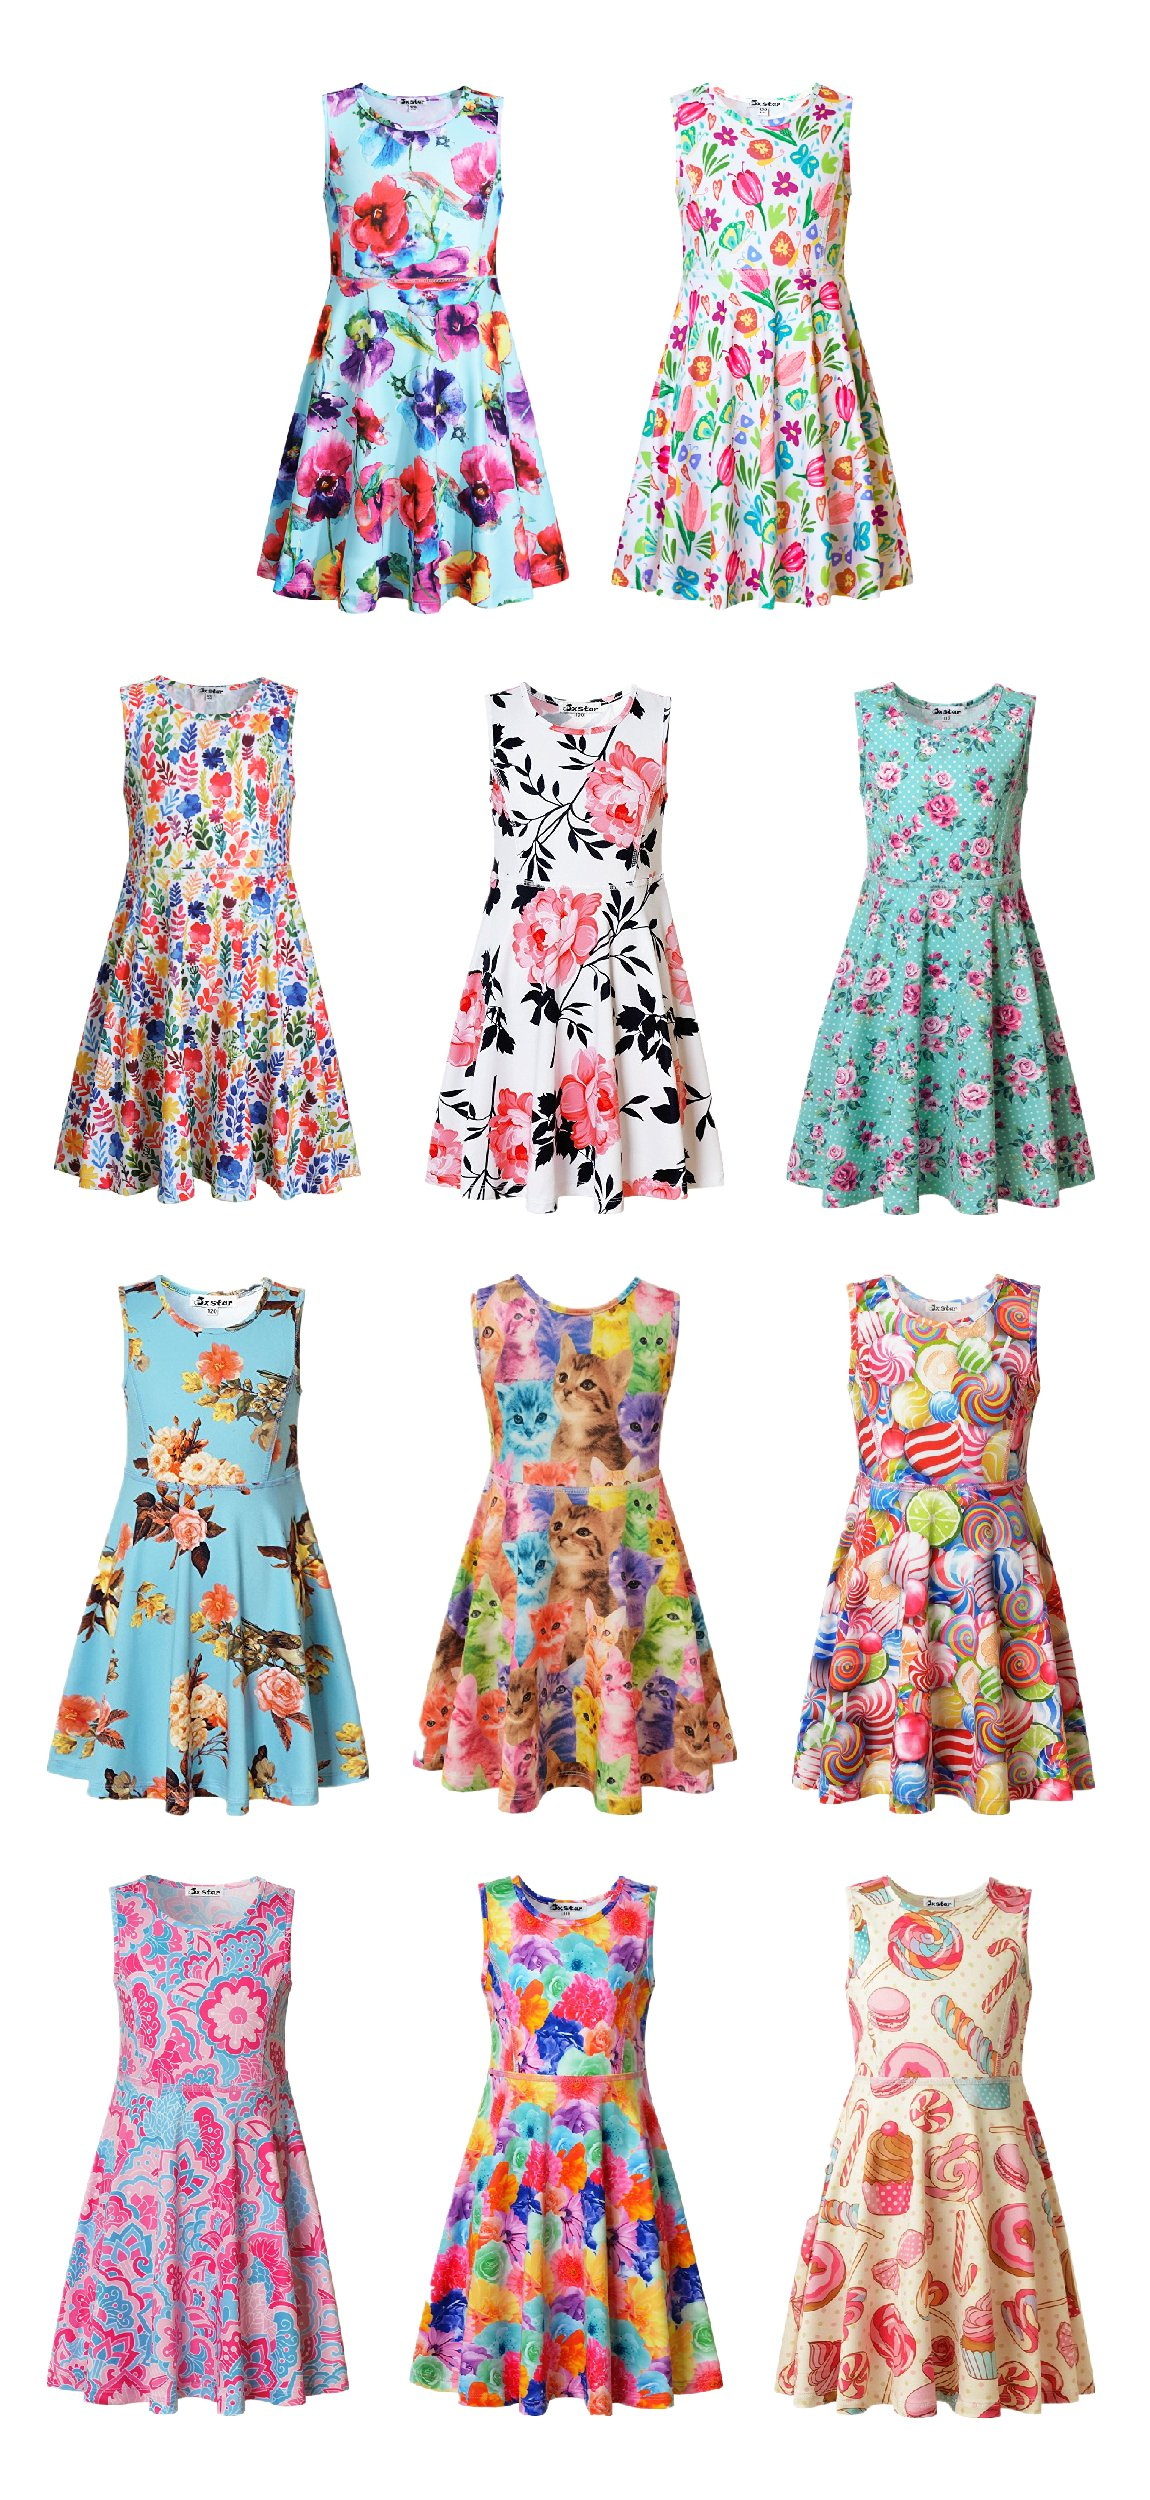 Jxstar Girl Casual Dress Flower Summer Floral Printed Sleeveless Holiday Little by Jxstar (Image #5)